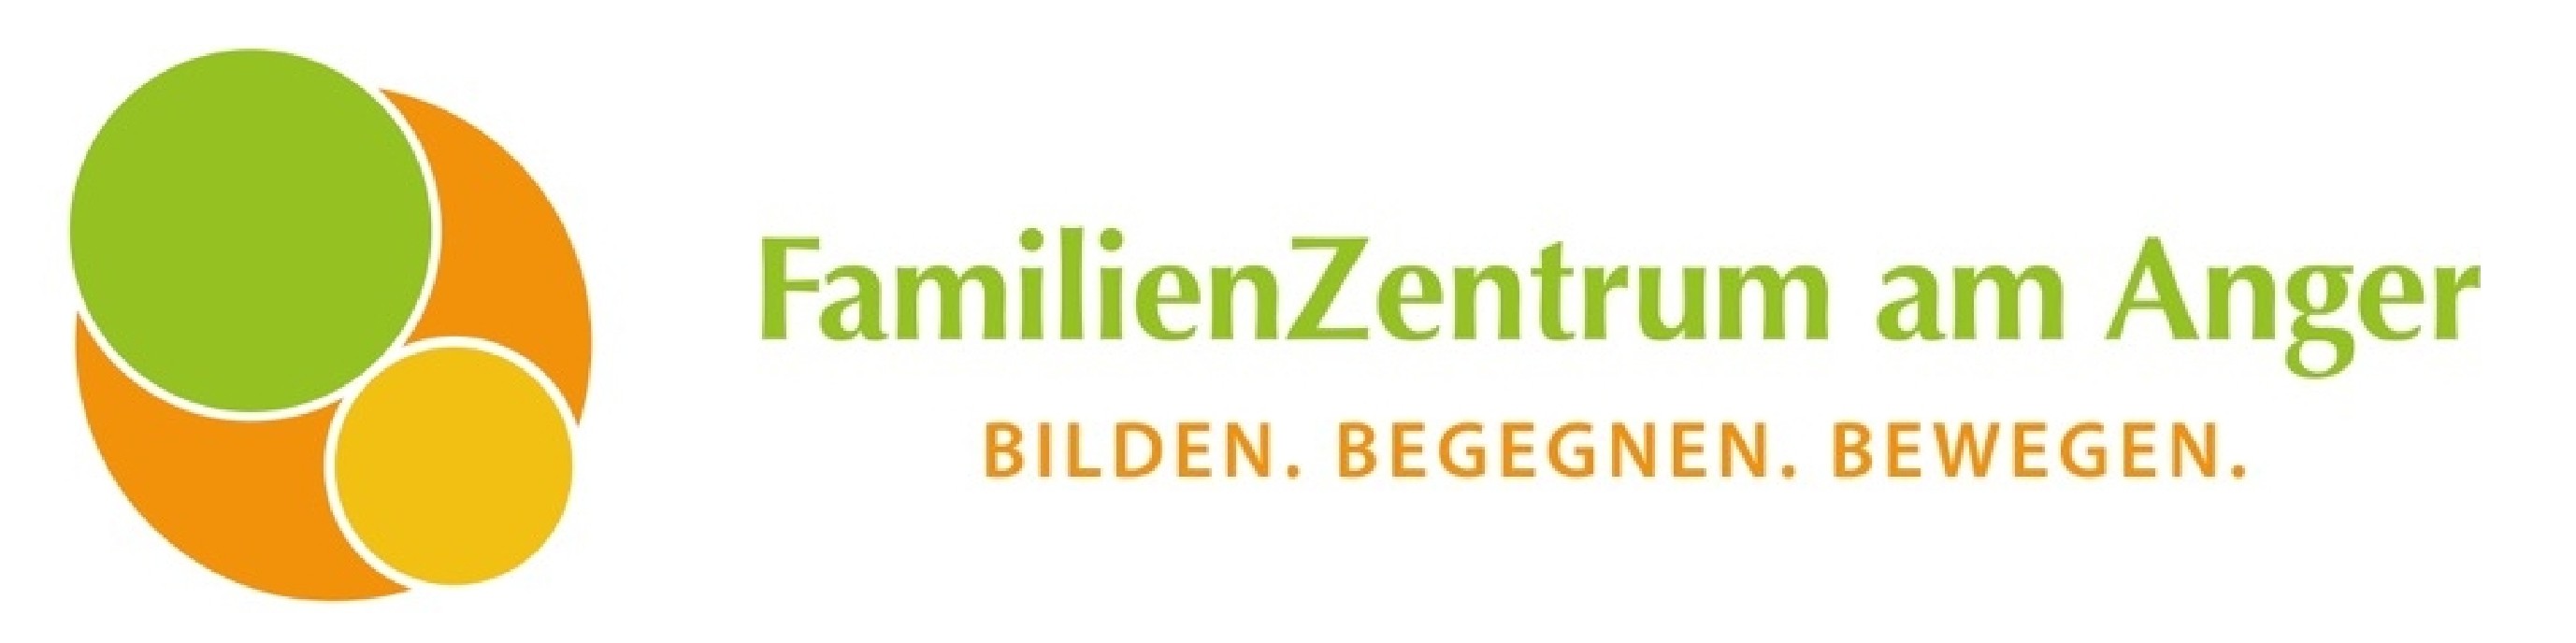 FamilienZentrum am Anger